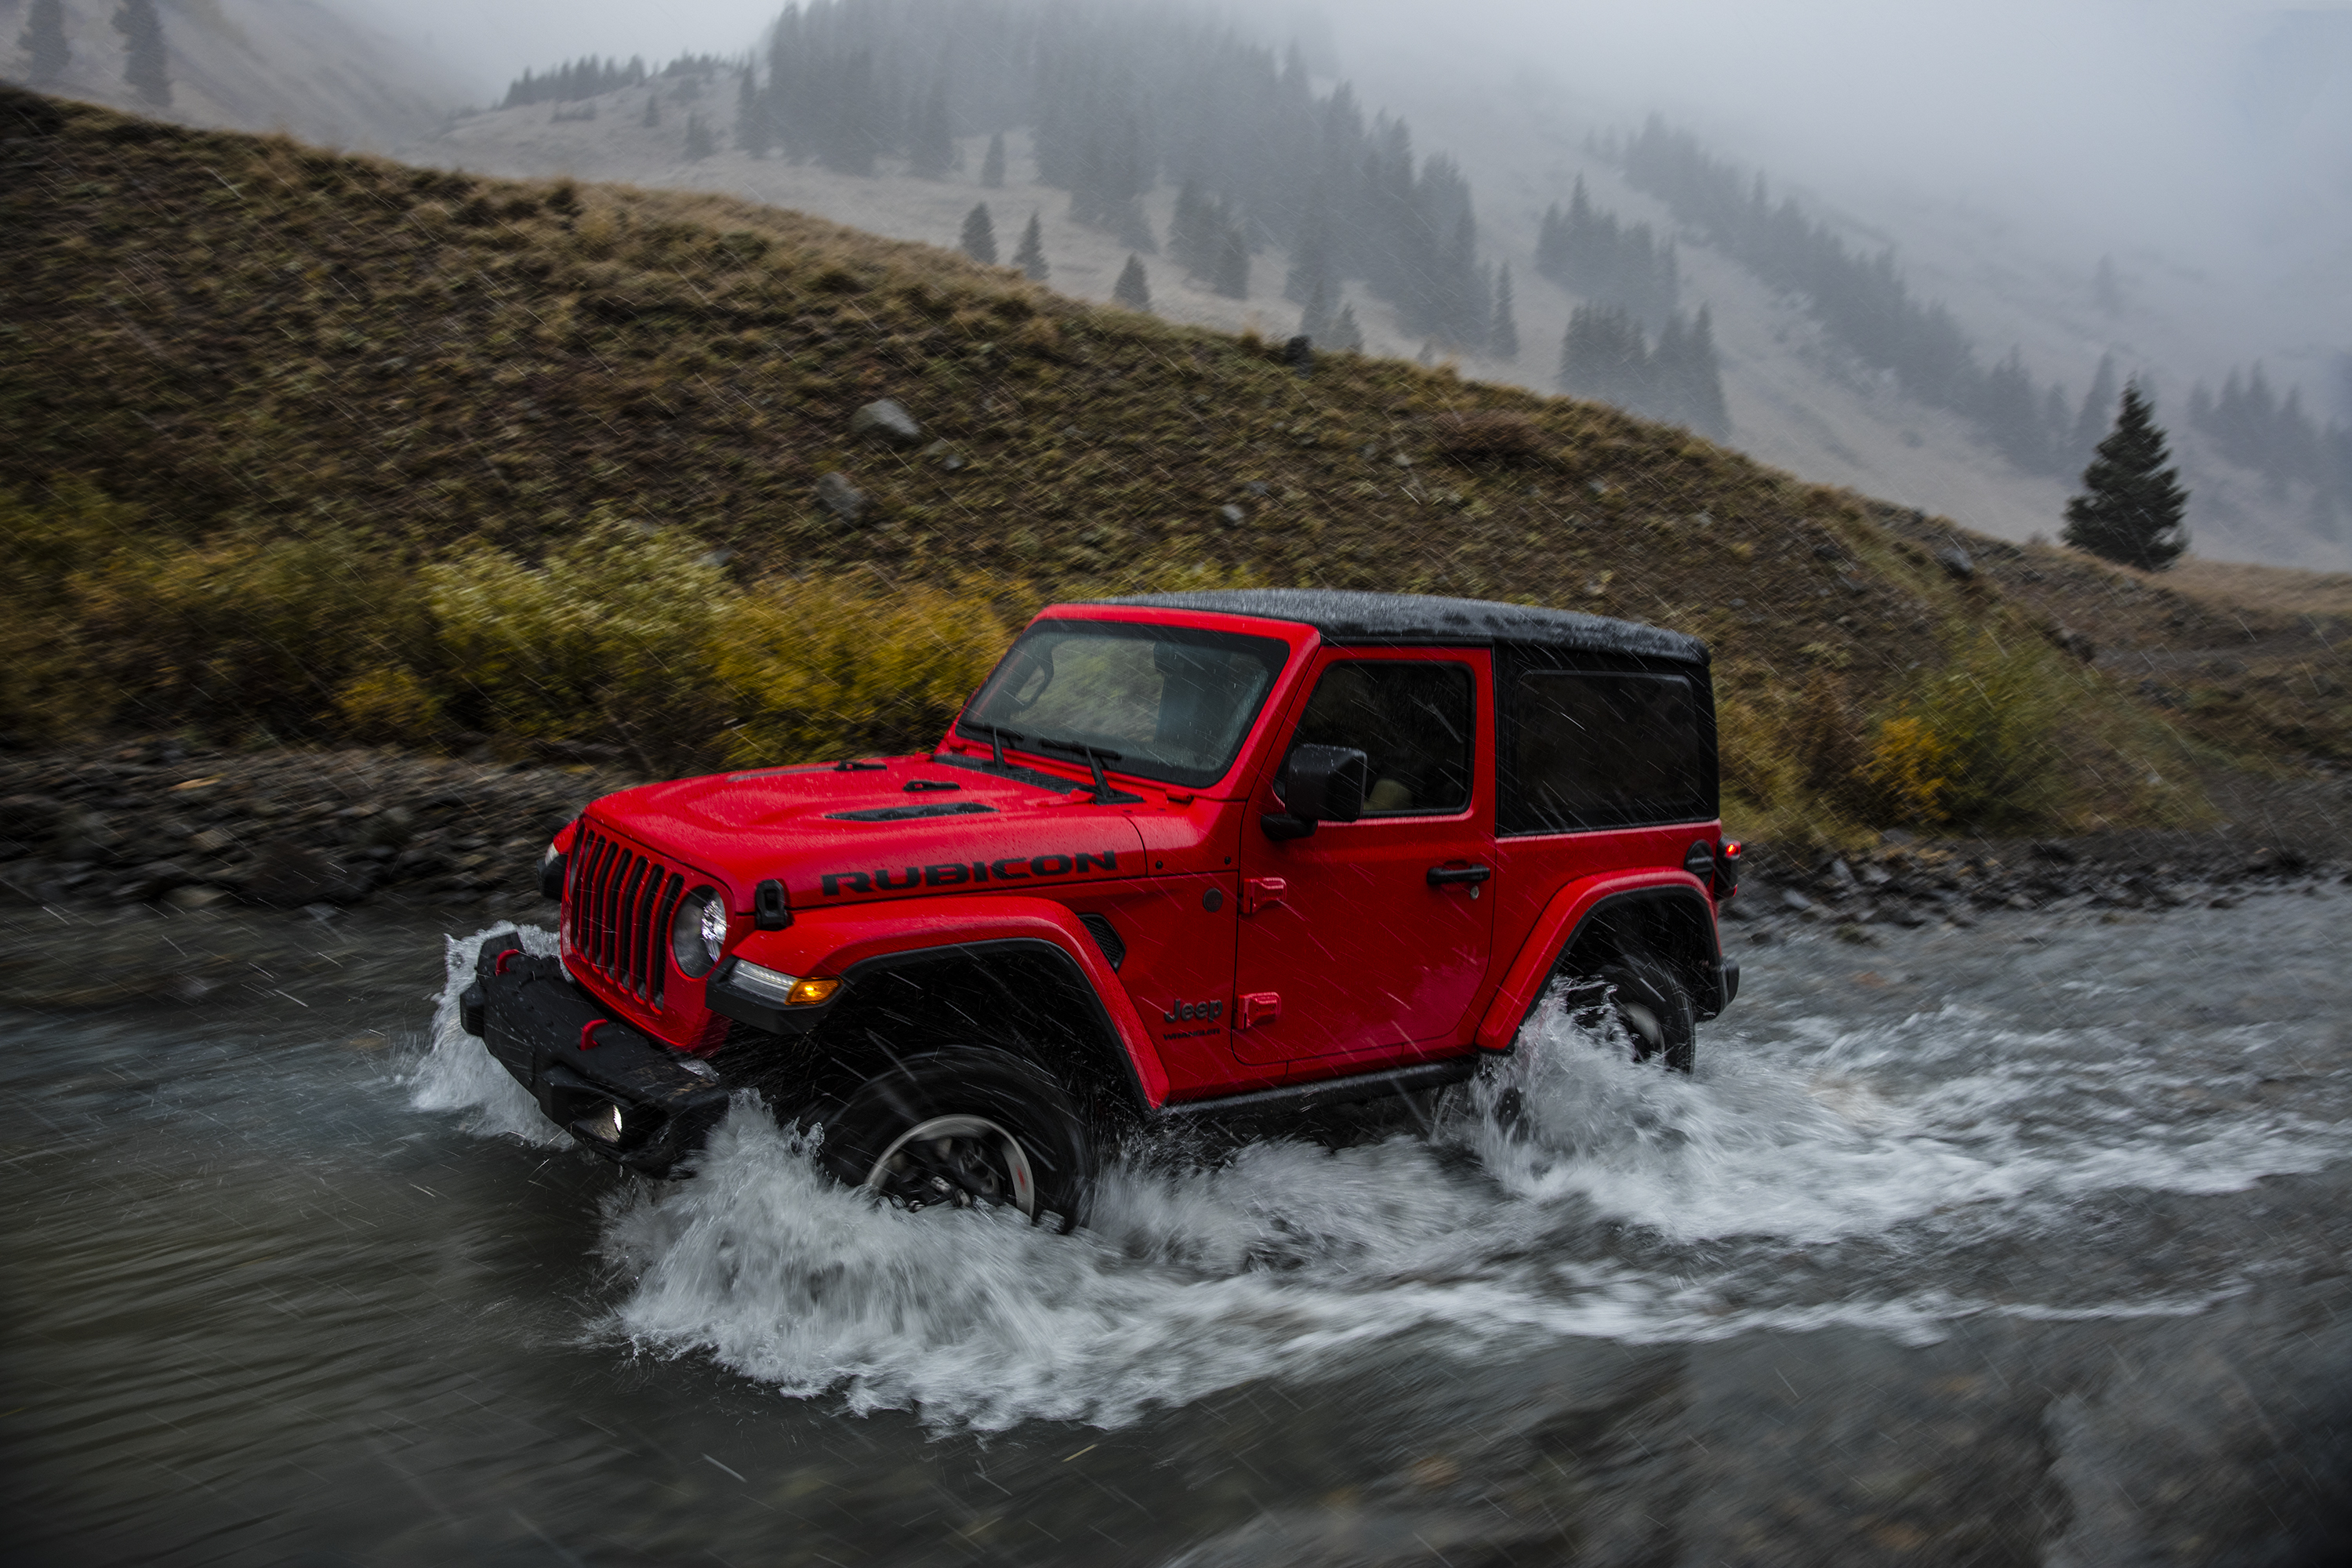 2018 Jeep Wrangler Rubicon water driving